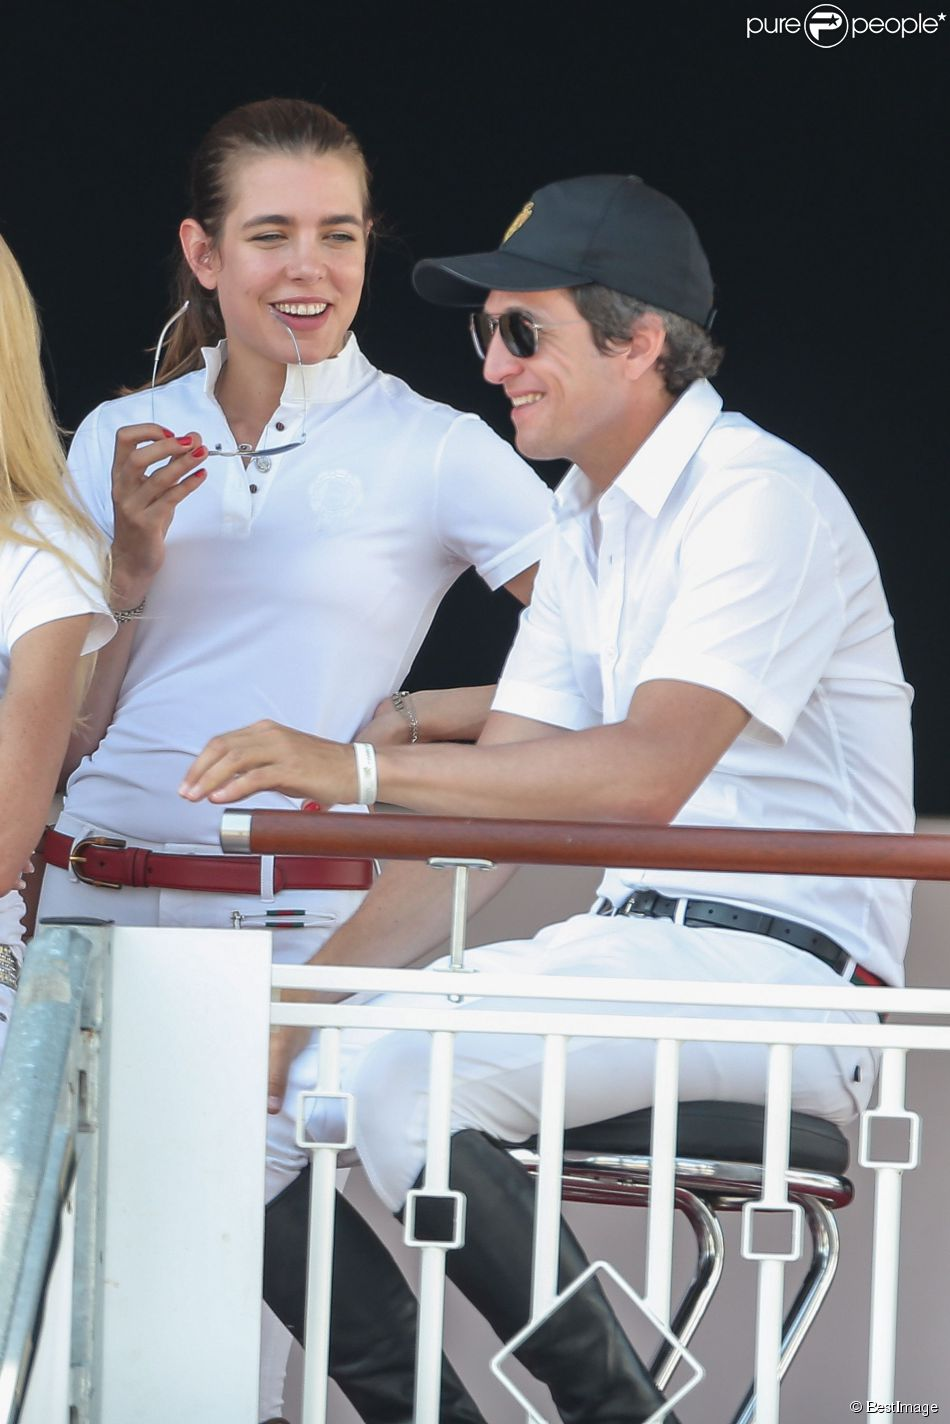 Guillaume Canet et Charlotte Casiraghi - Jumping International de Cannes le 12 Juin 2014  Cannes International Jumping contest on 12/06/201412/06/2014 - Cannes